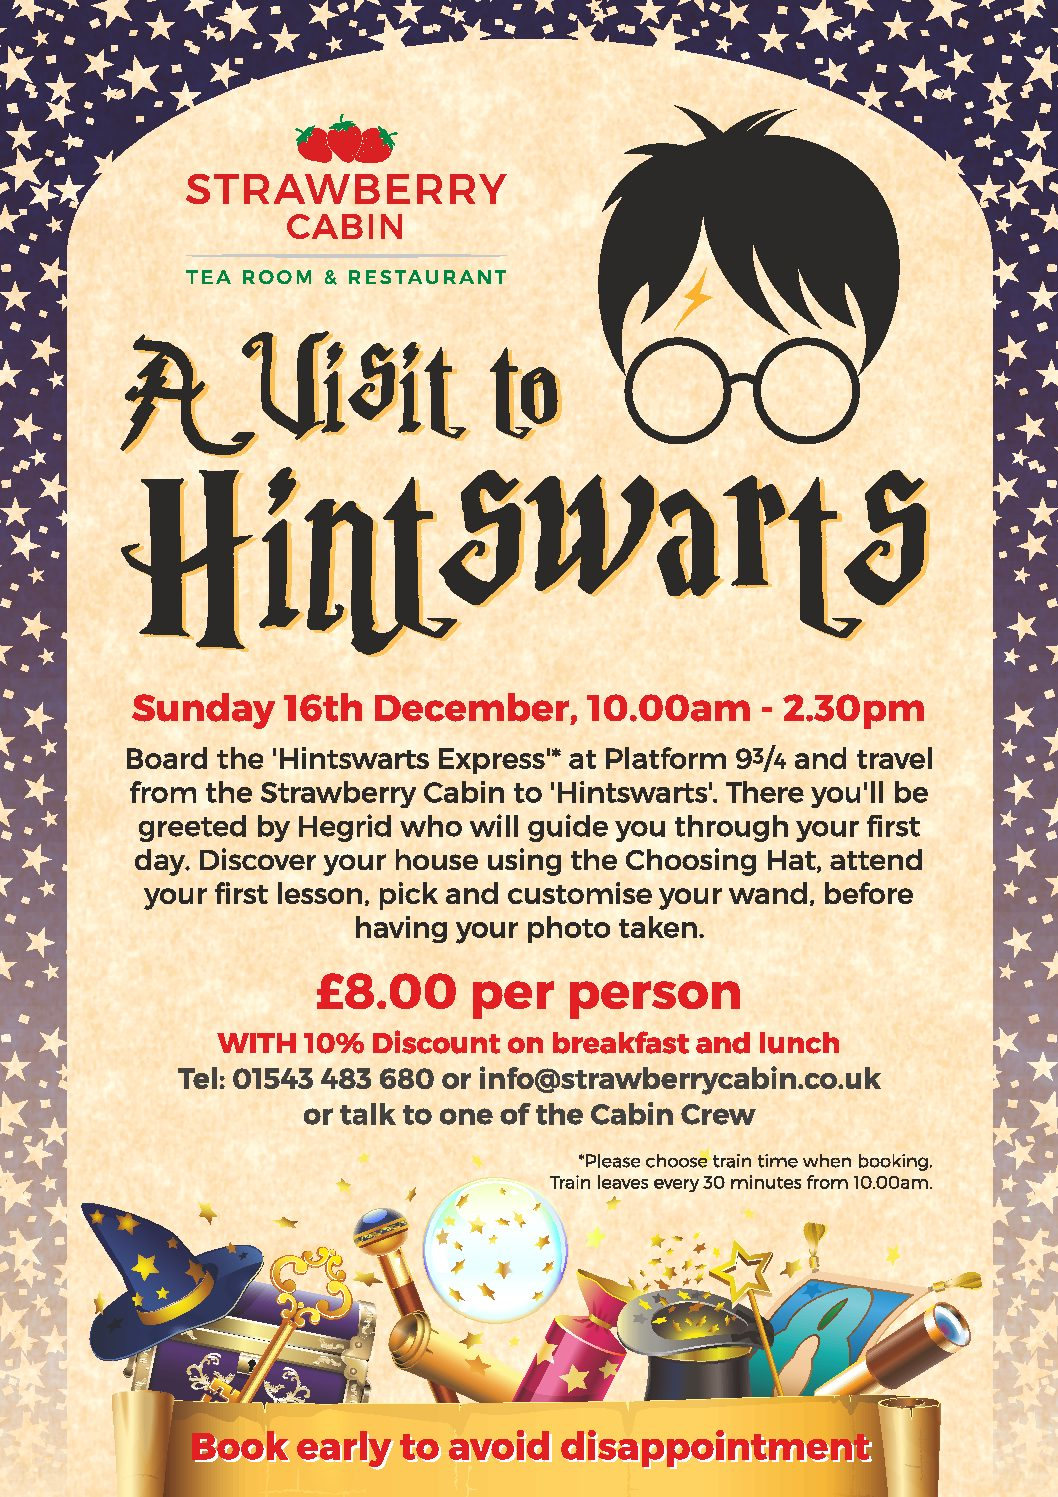 Hintswarts Sunday 16th December